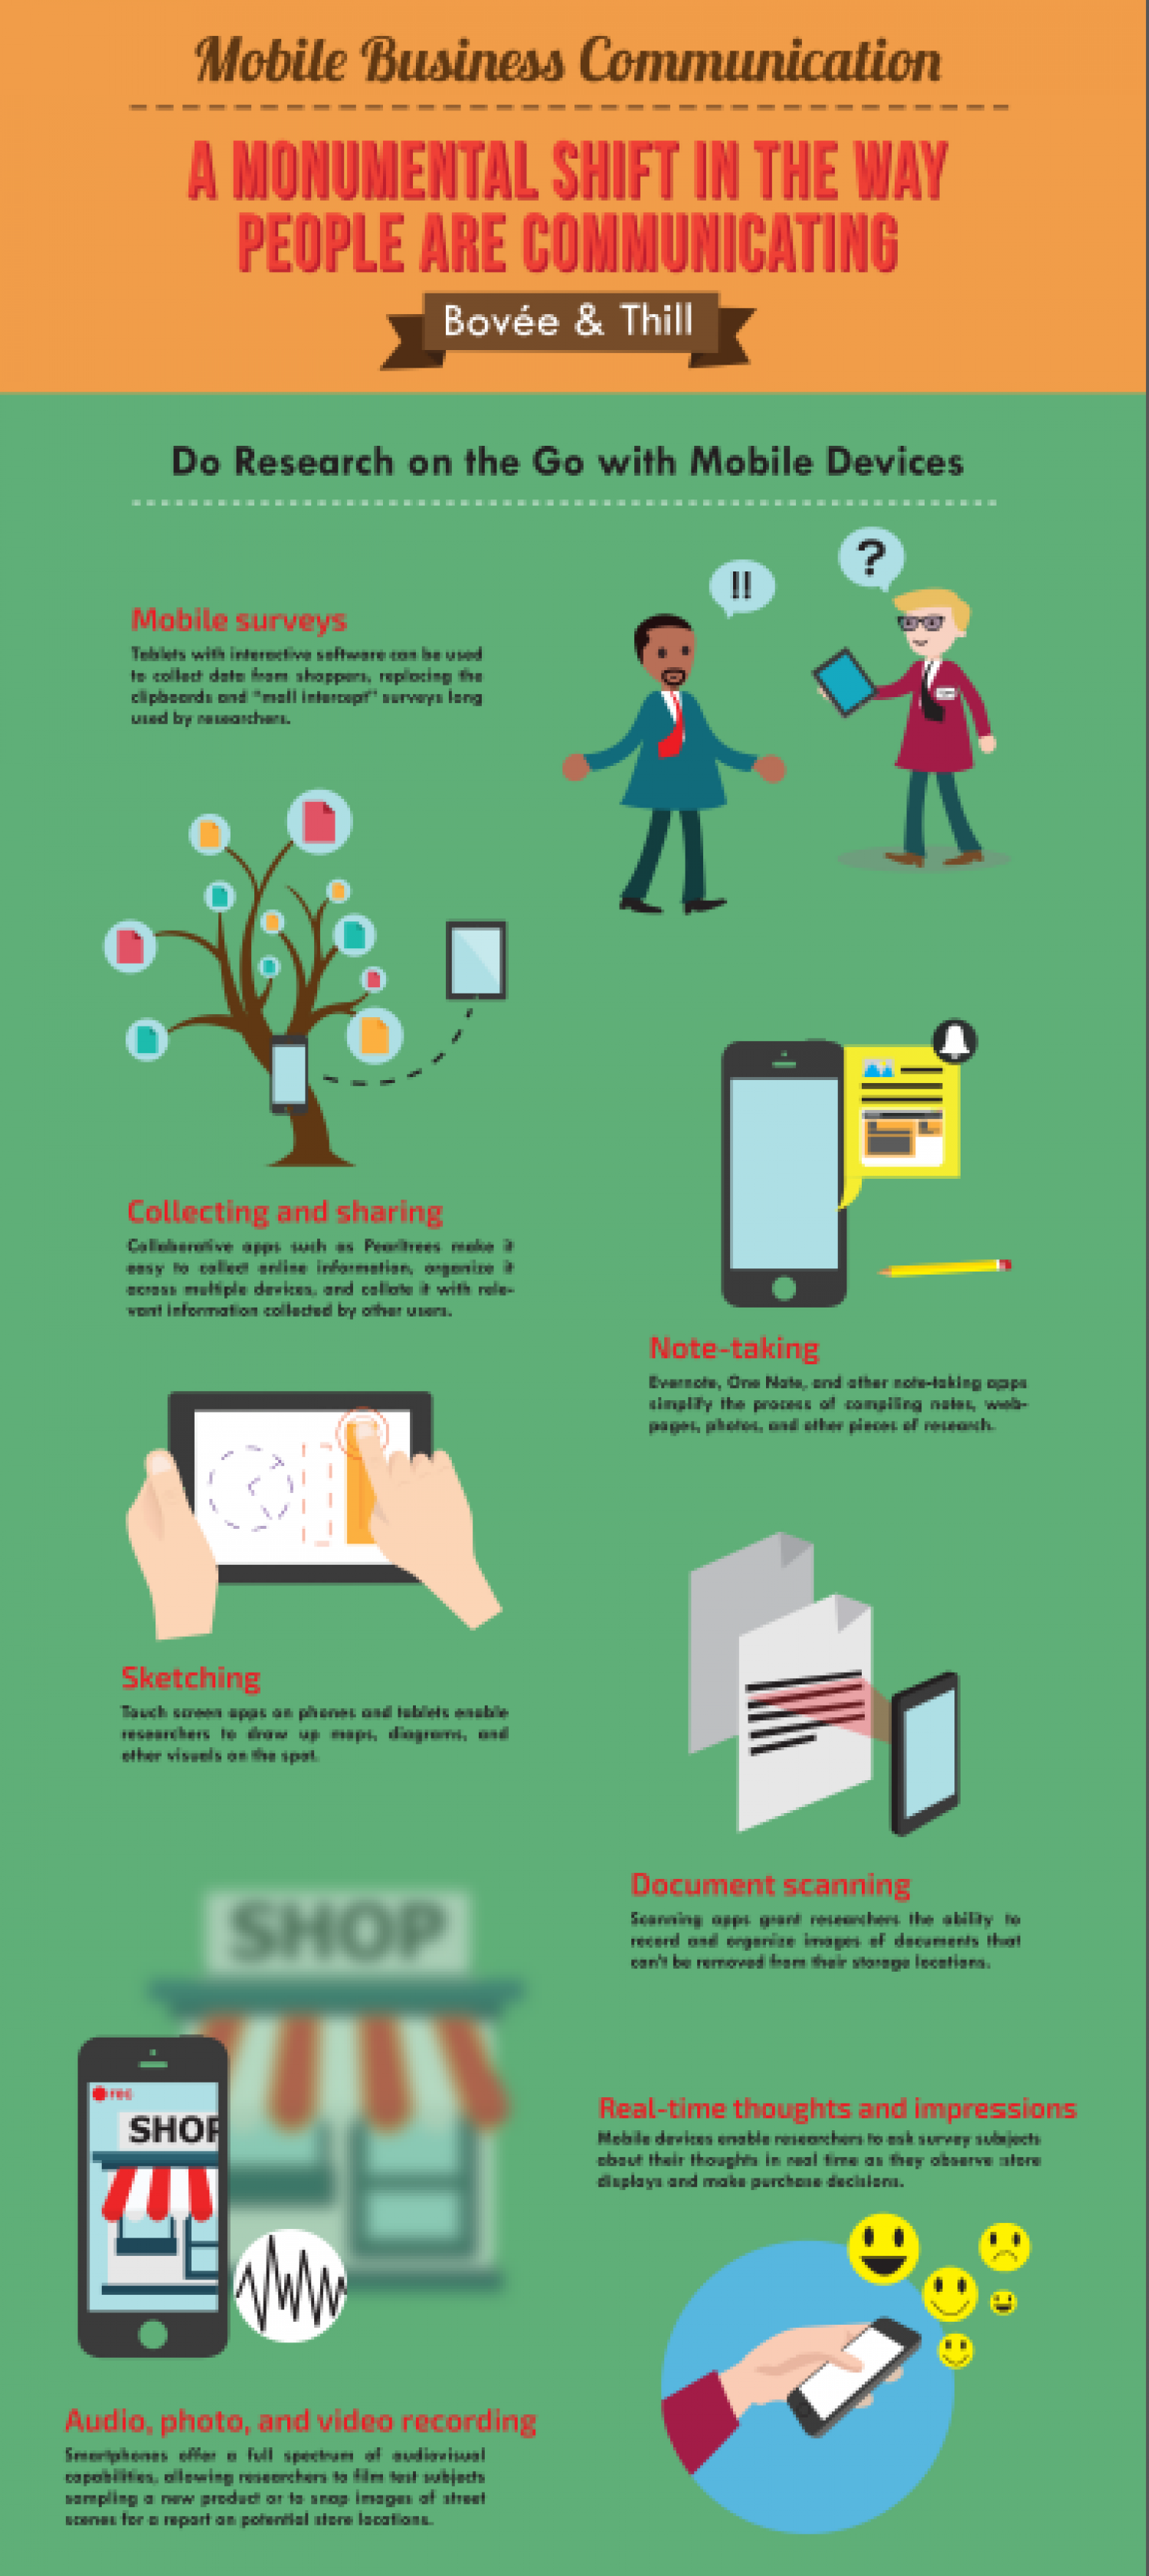 Do Research on the Go with Mobile Devices Infographic